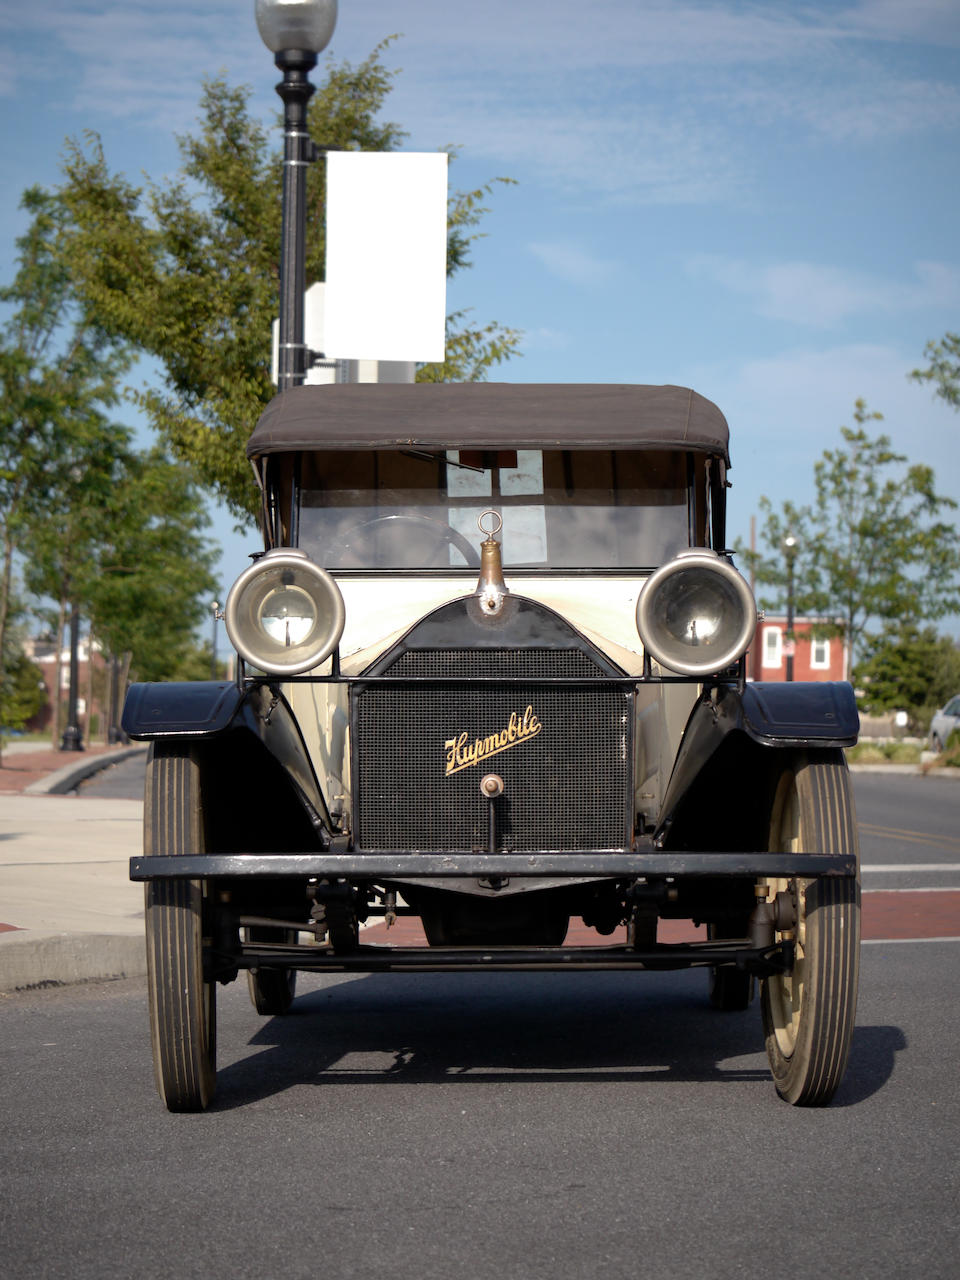 1913 Hupmobile Model 32 Two-Seater  Chassis no. H37154 Engine no. 36720